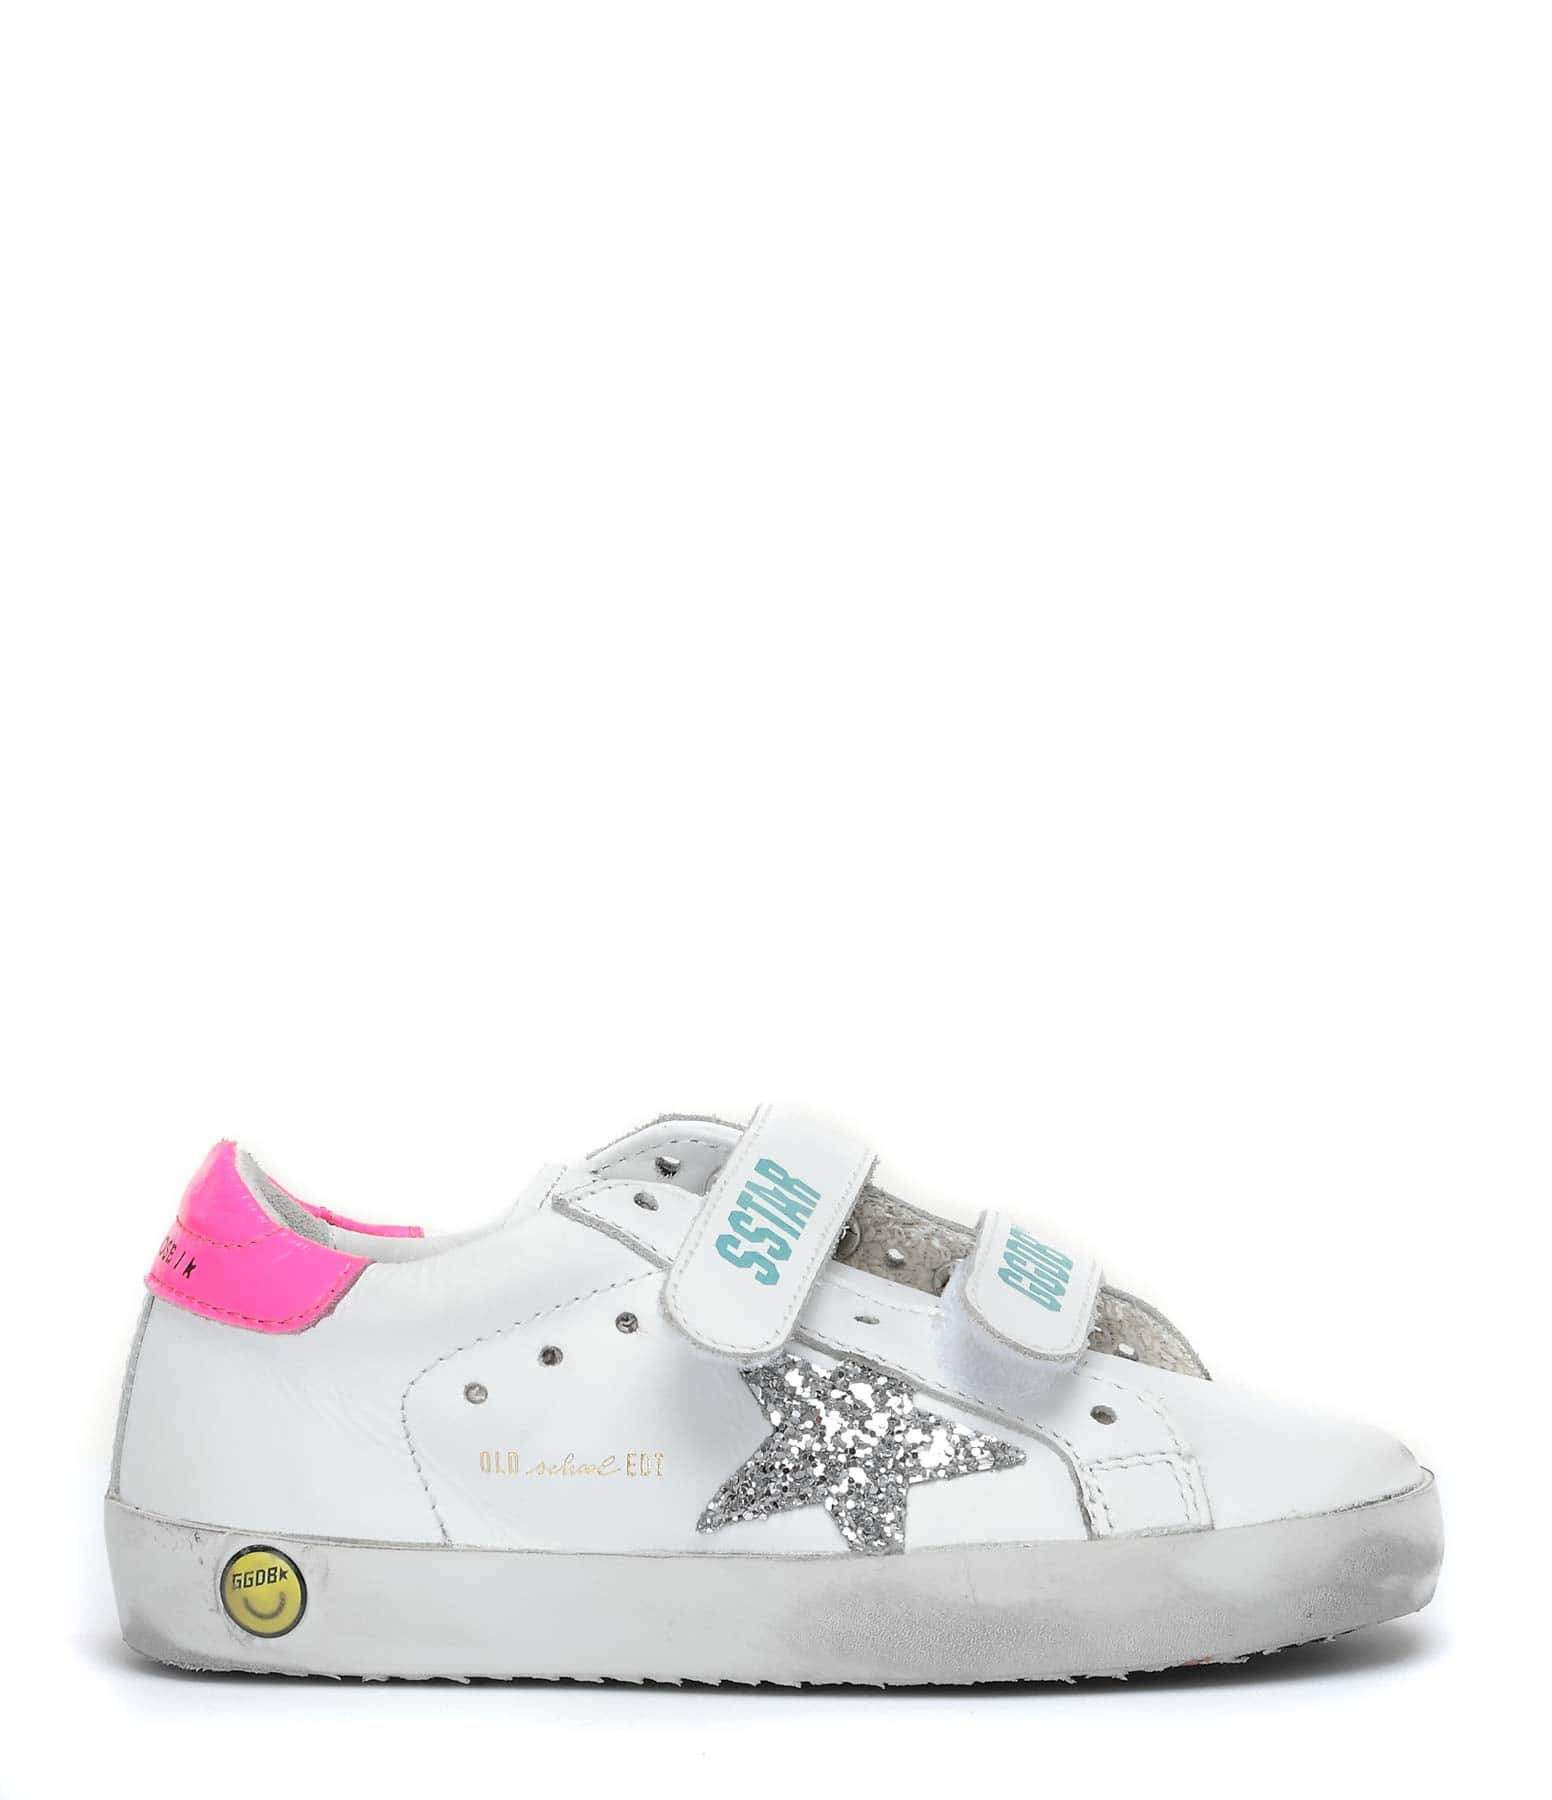 GOLDEN GOOSE - Baskets Enfant Old School Cuir Blanc Fucshia